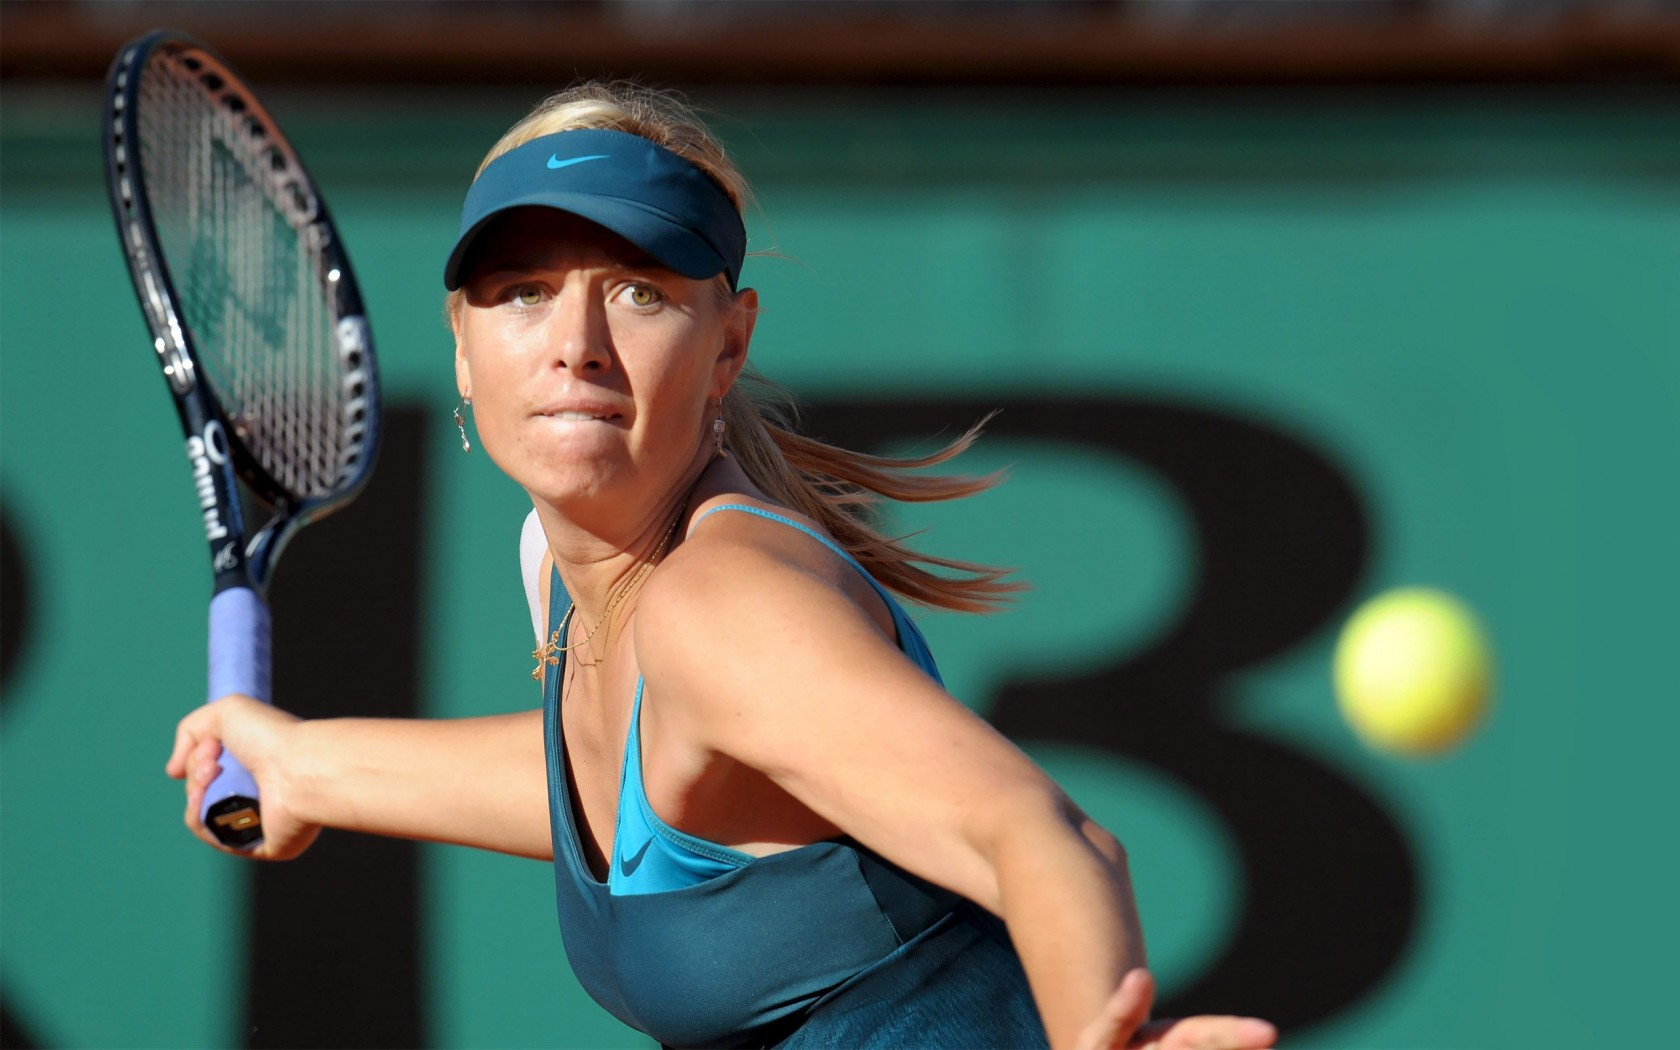 Maria Sharapova Begins Long Road Back After Suspension